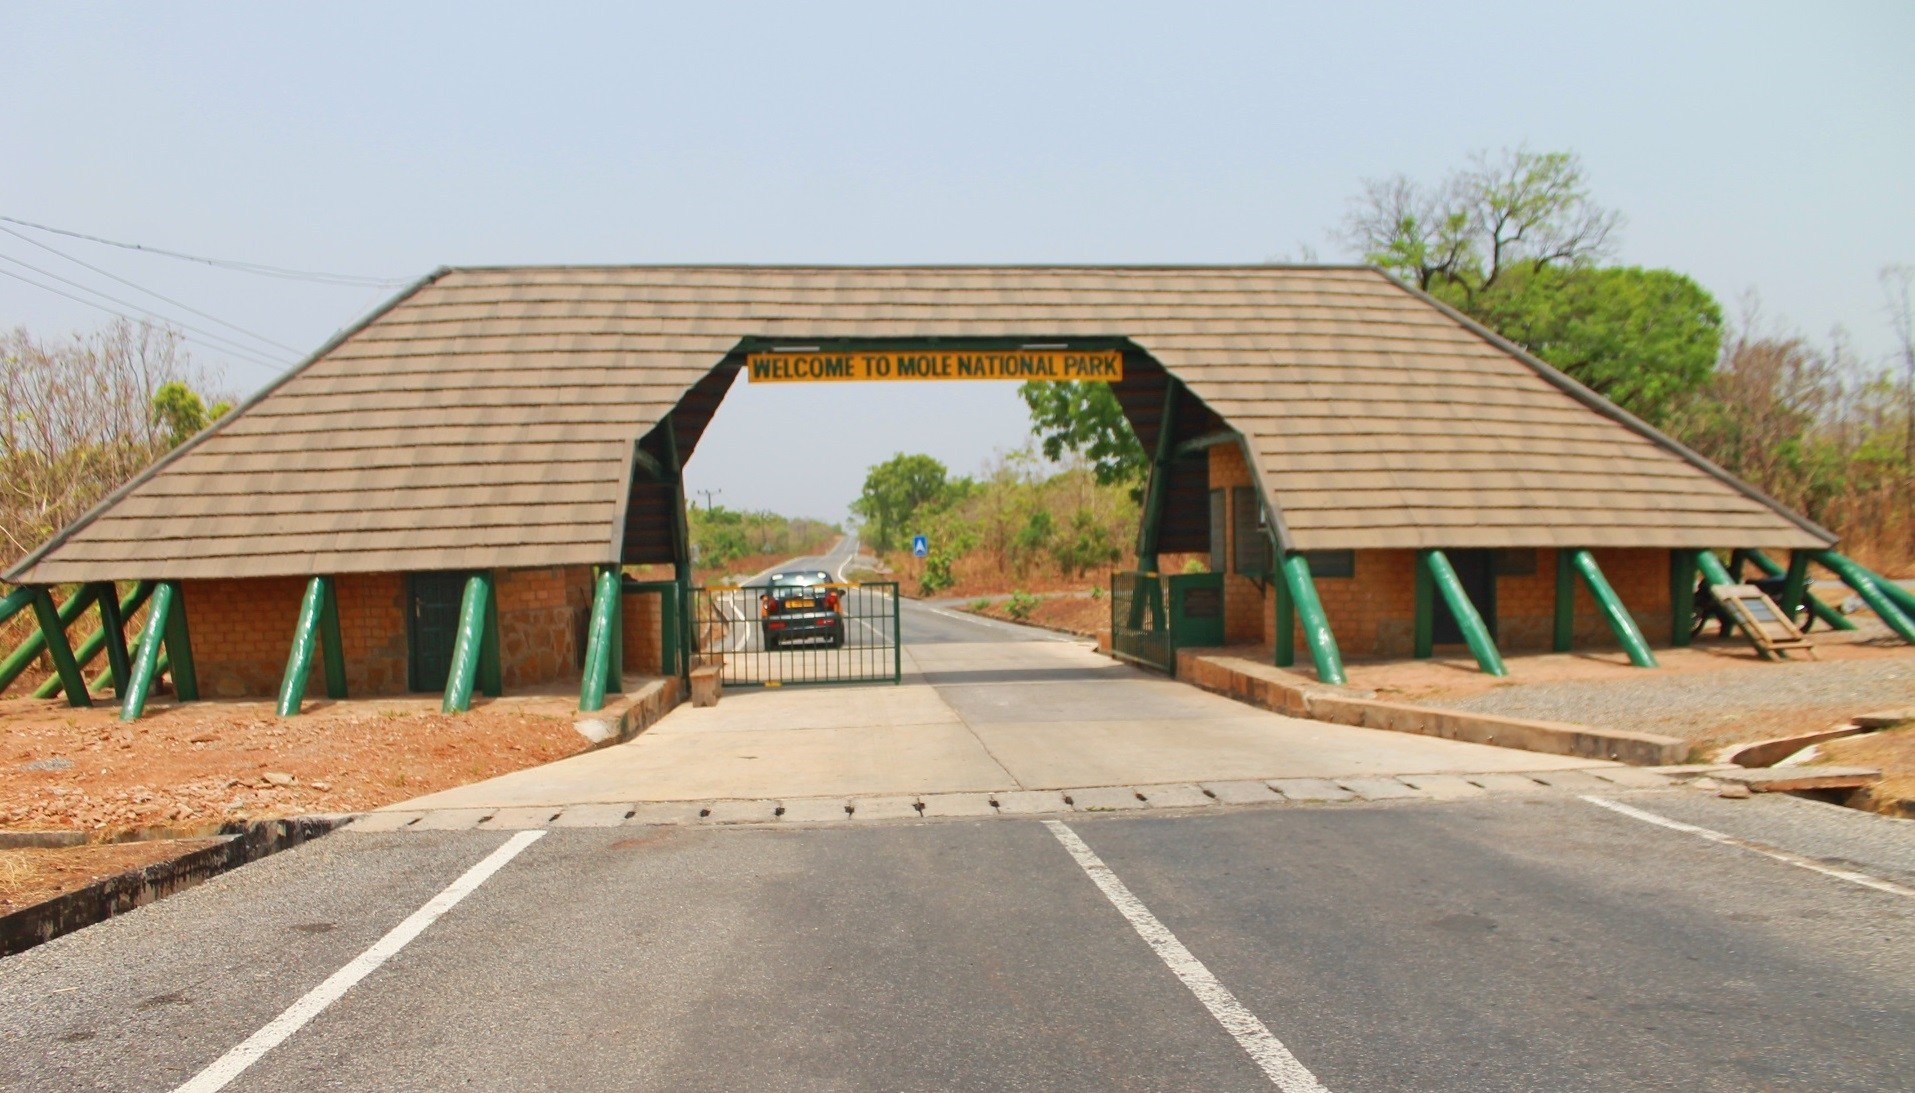 Larabanga Ghana's top tourist destination